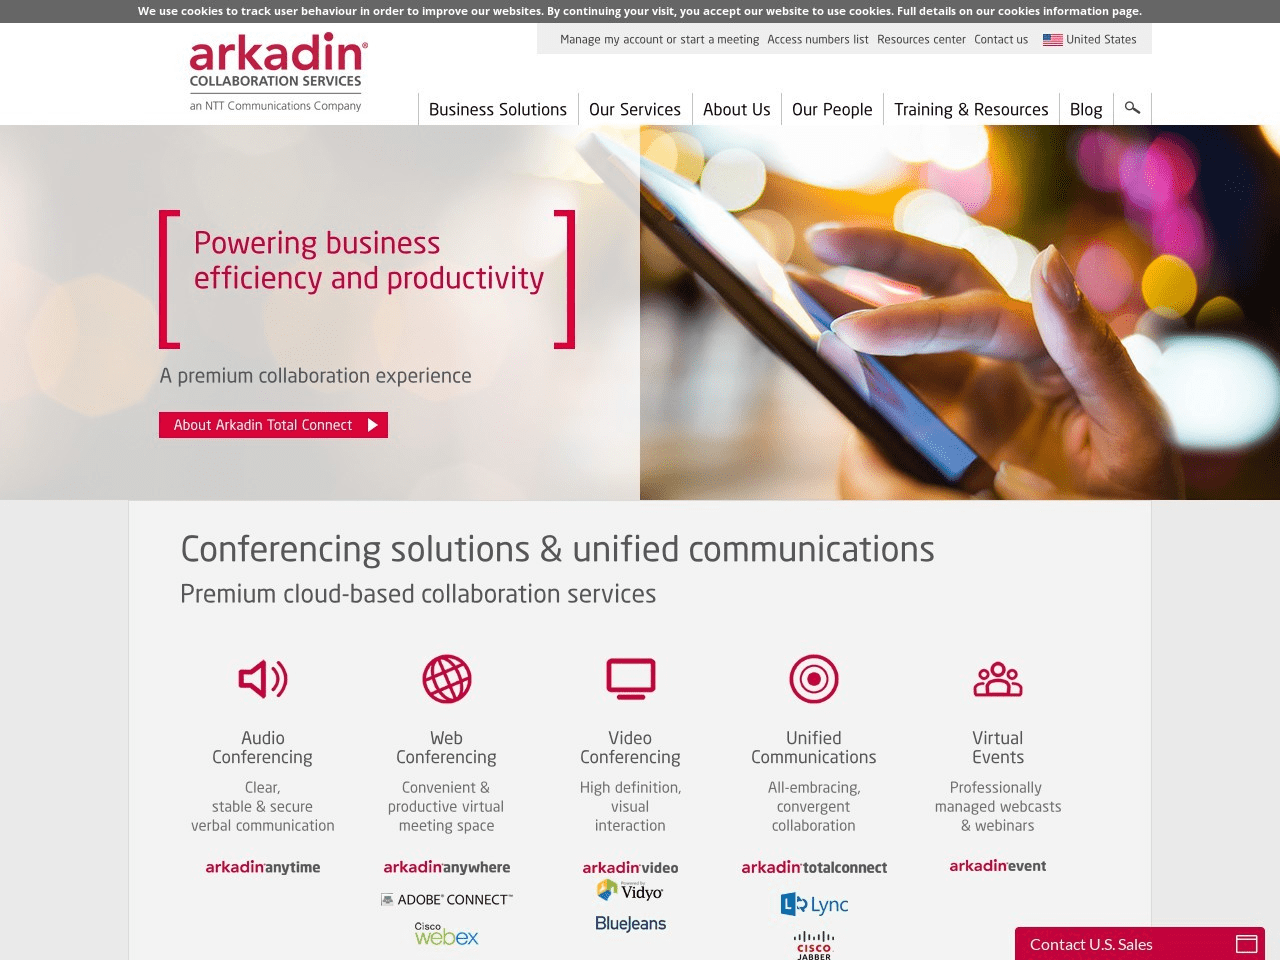 Arkadin Screenshot